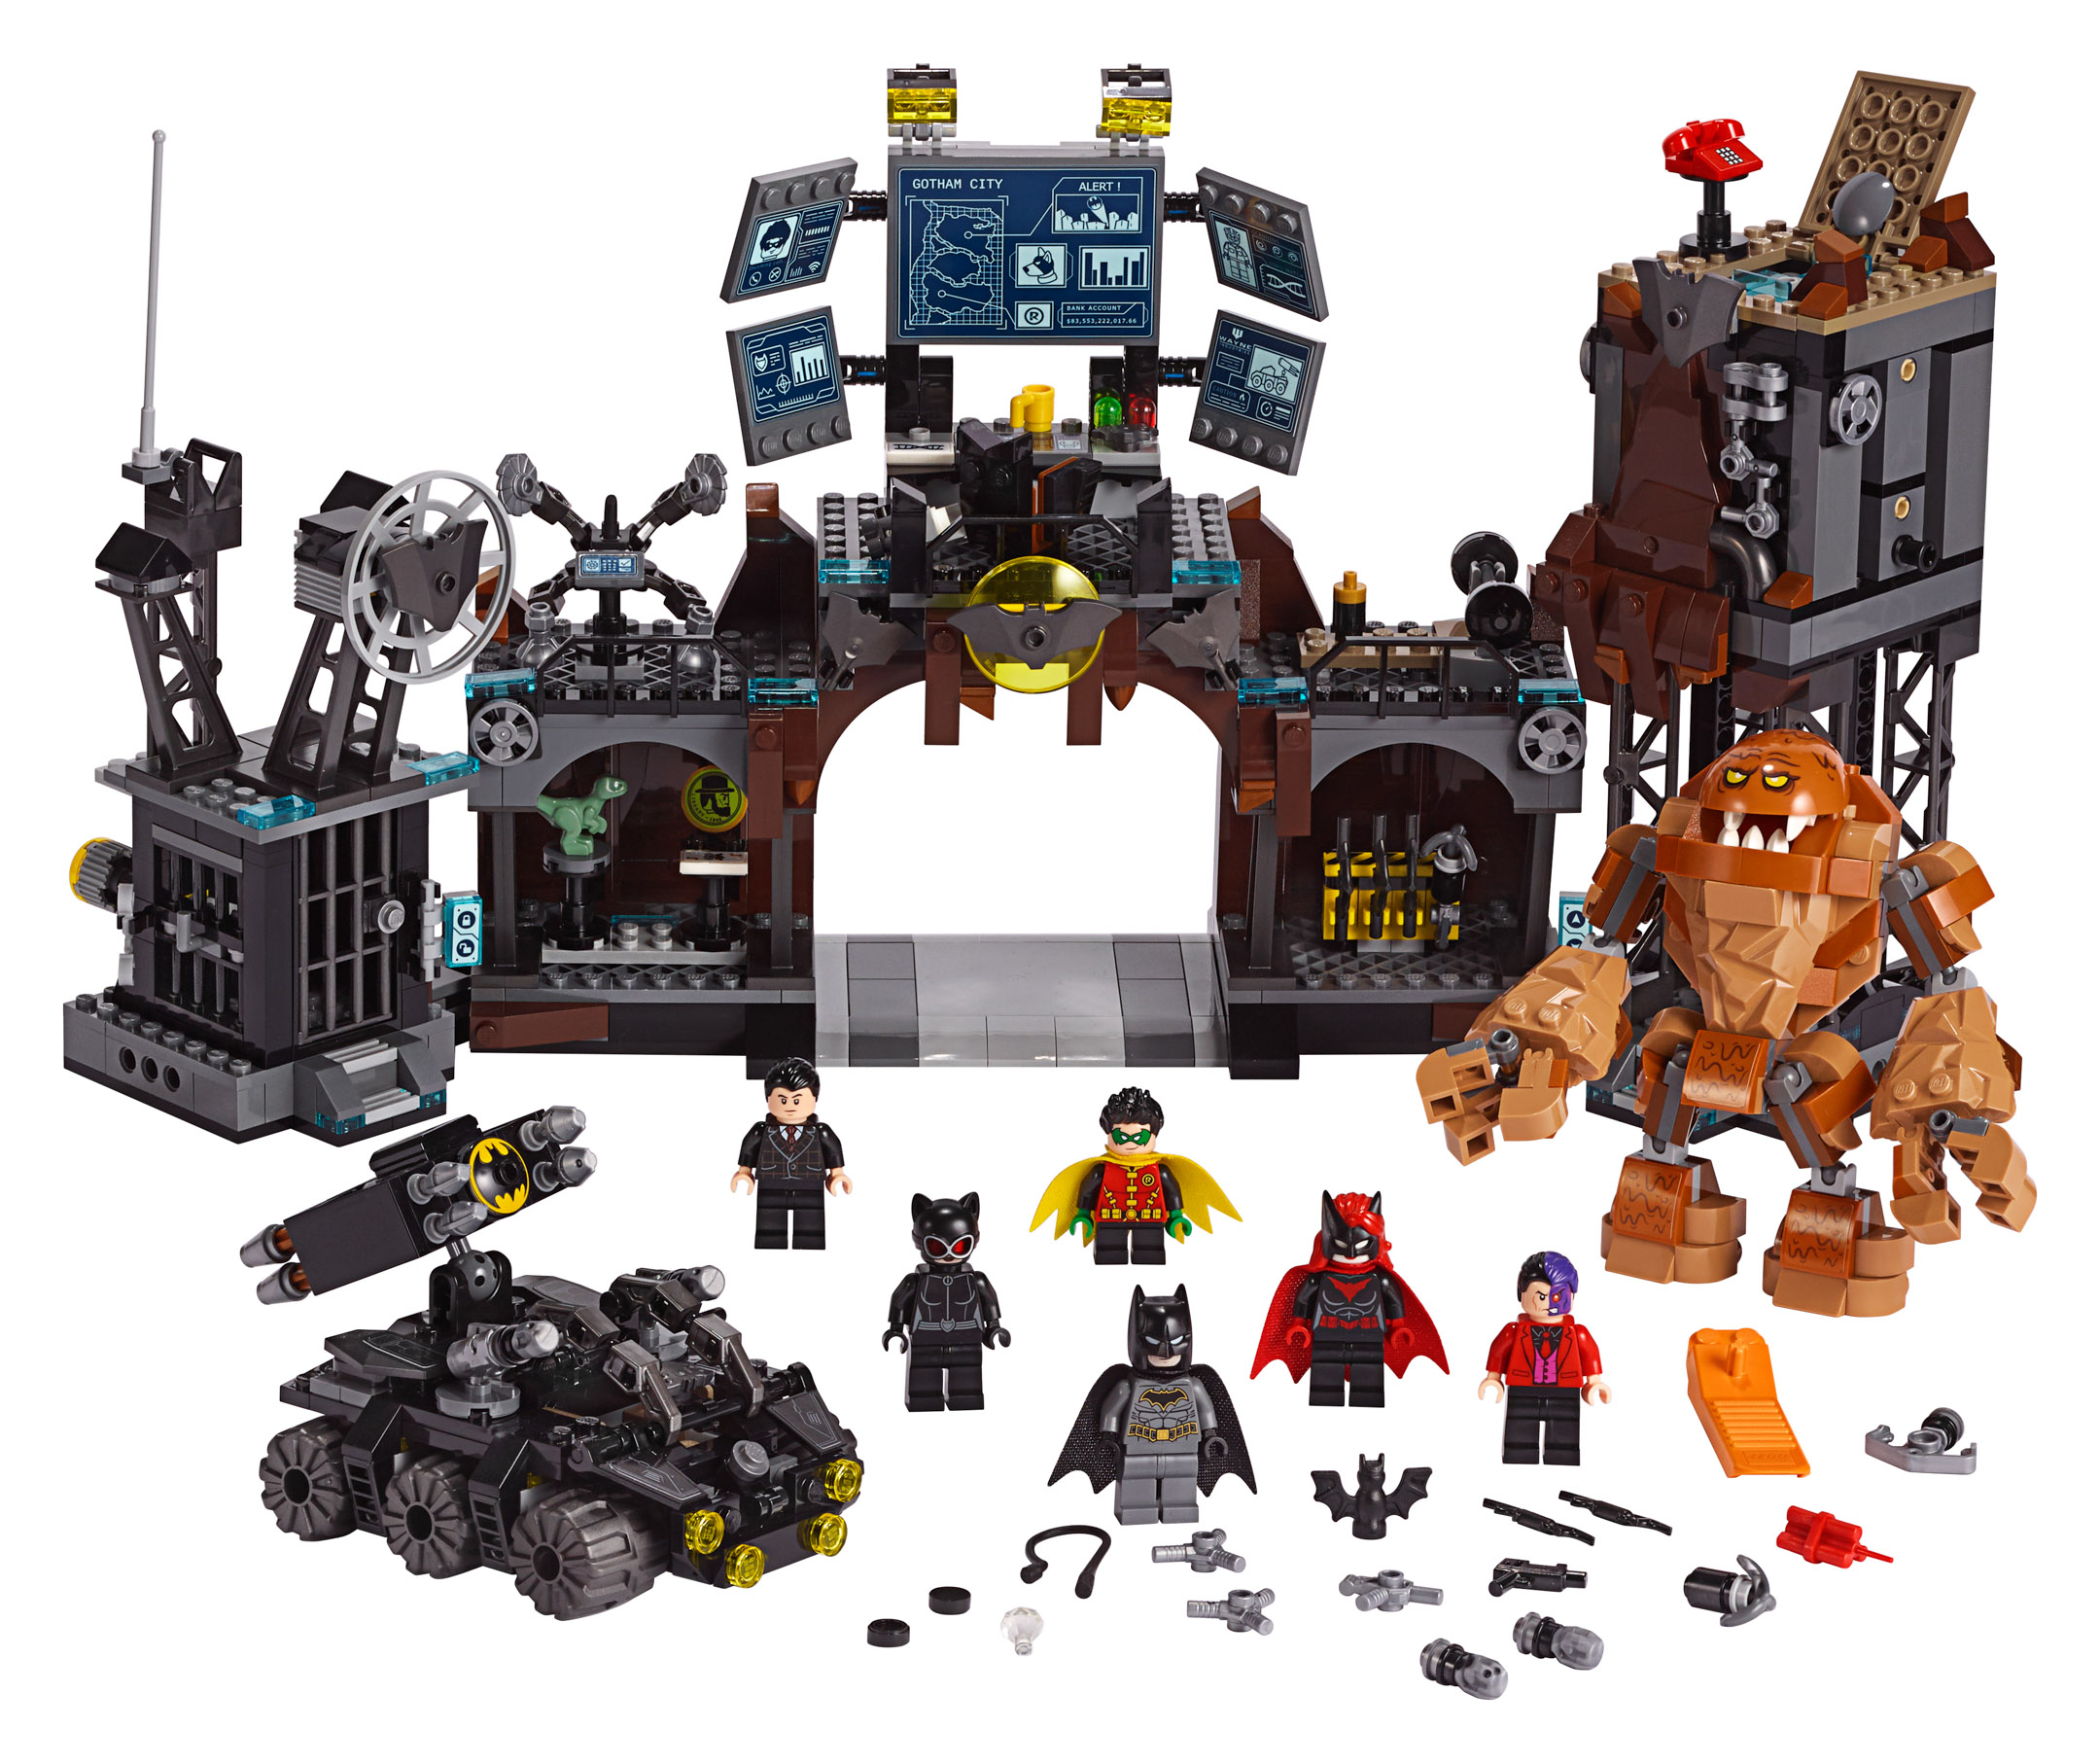 Batman Arkham Knight Batcave: LEGO Batman 80th Anniversary 76122 Batcave Clayface